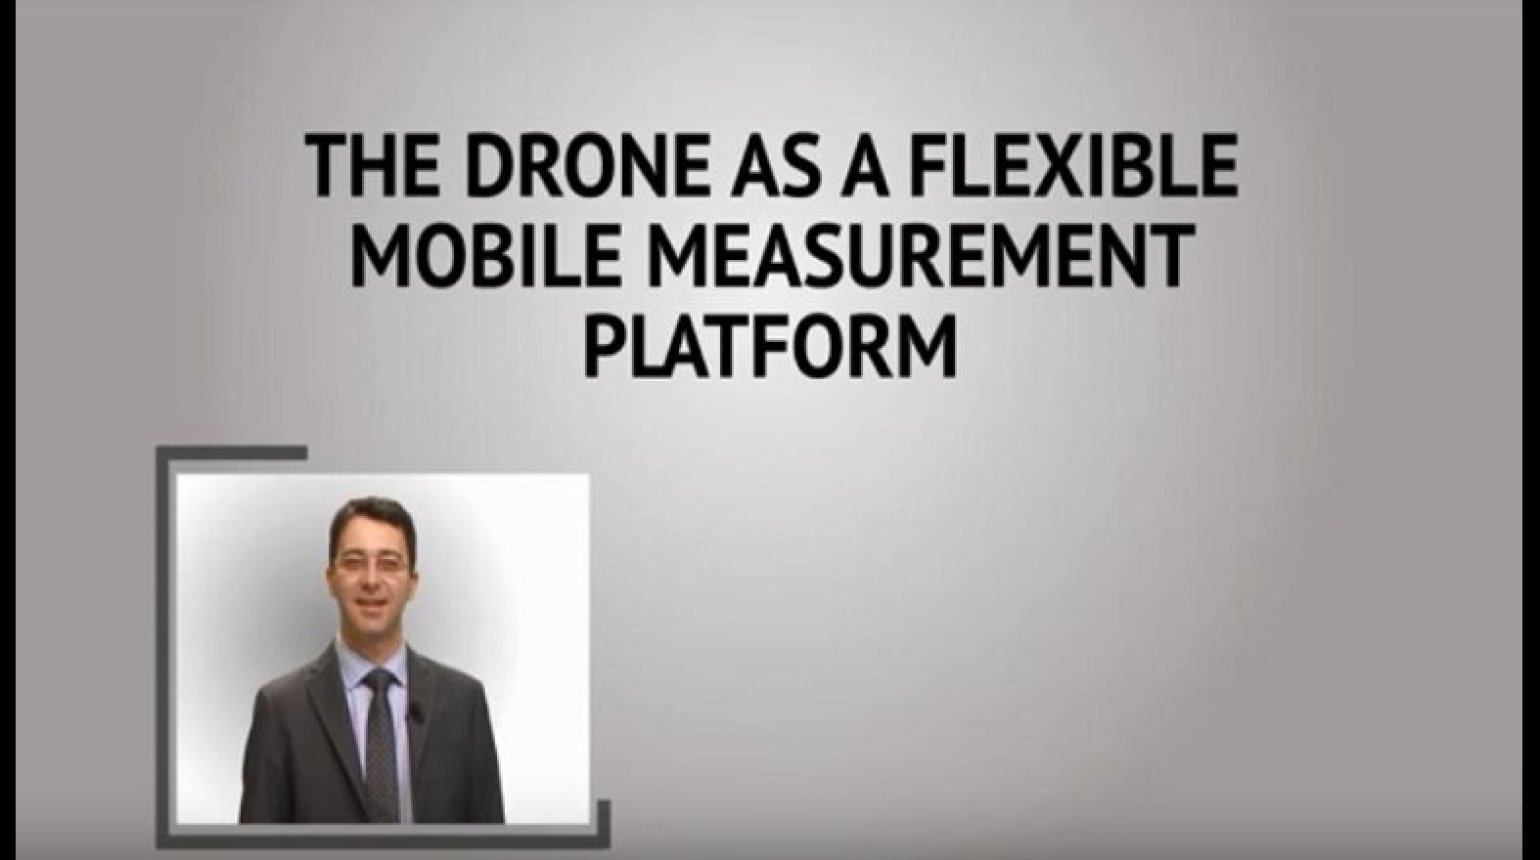 The Drone as a Flexible Mobile Measurement Platform